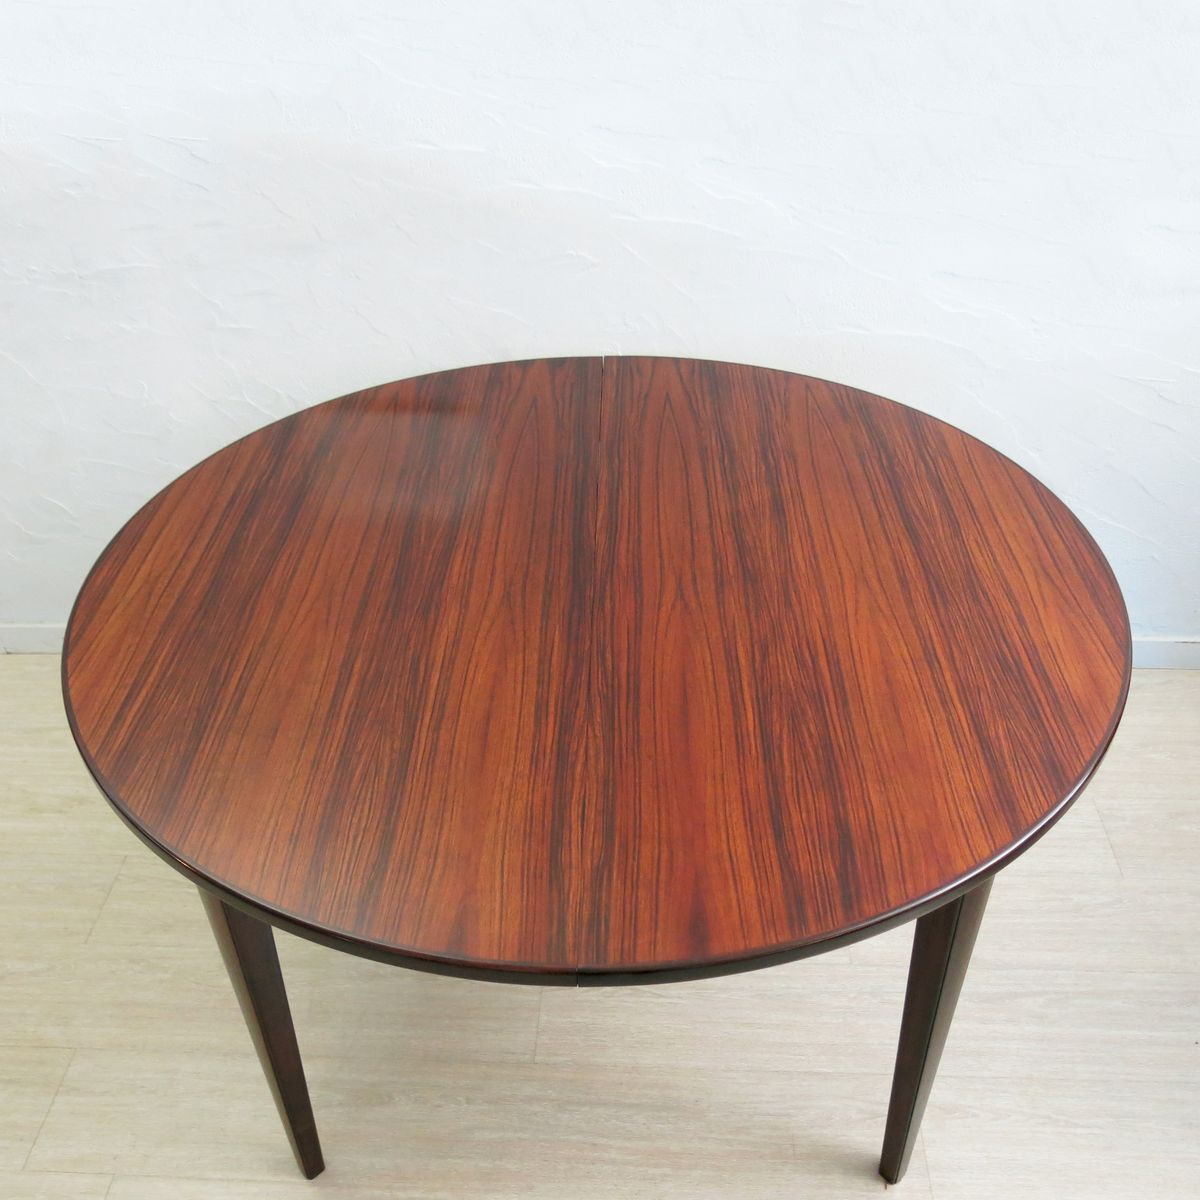 Model 55 Rosewood Dining Table from Omann Junn for sale at  : model 55 rosewood dining table from omann junn 3 from pamono.com size 1200 x 1200 jpeg 103kB